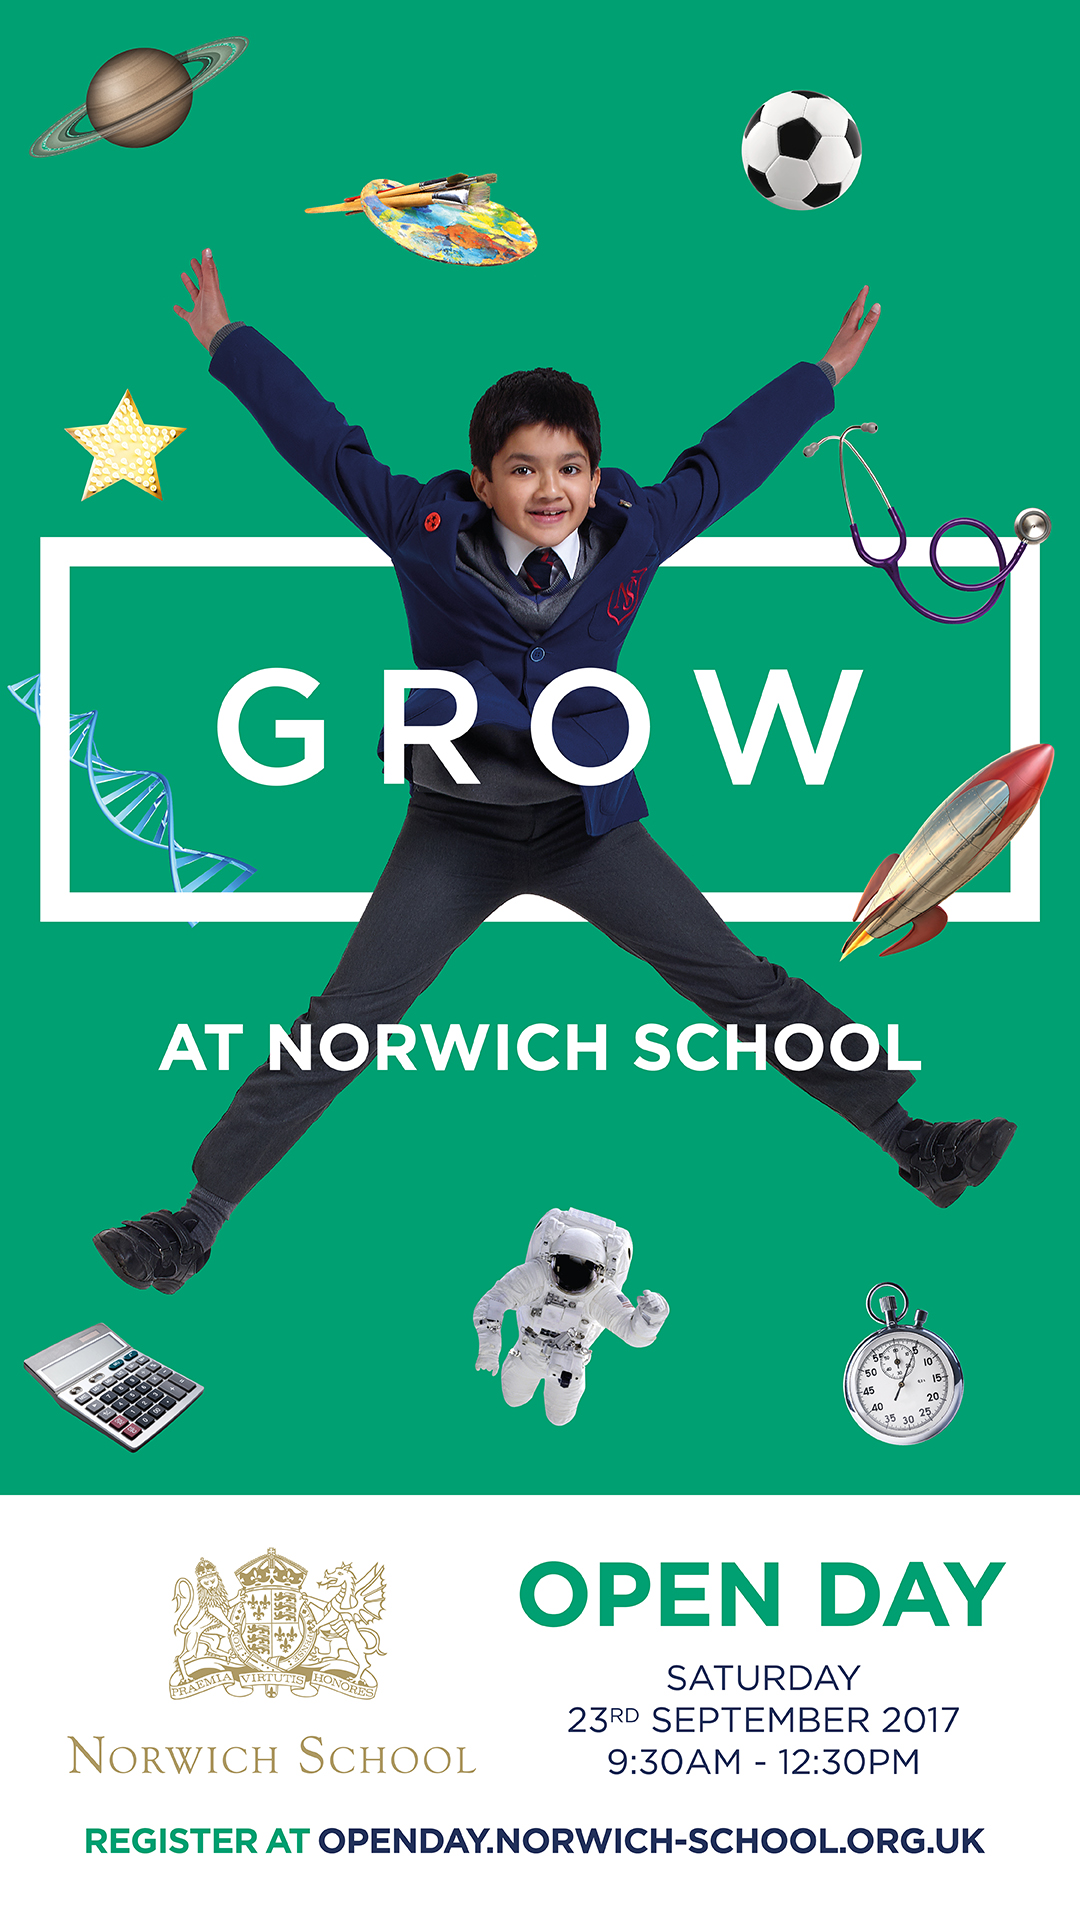 Norwich-School_Polo-Advertising-v2-Grow 1080px x 1920px